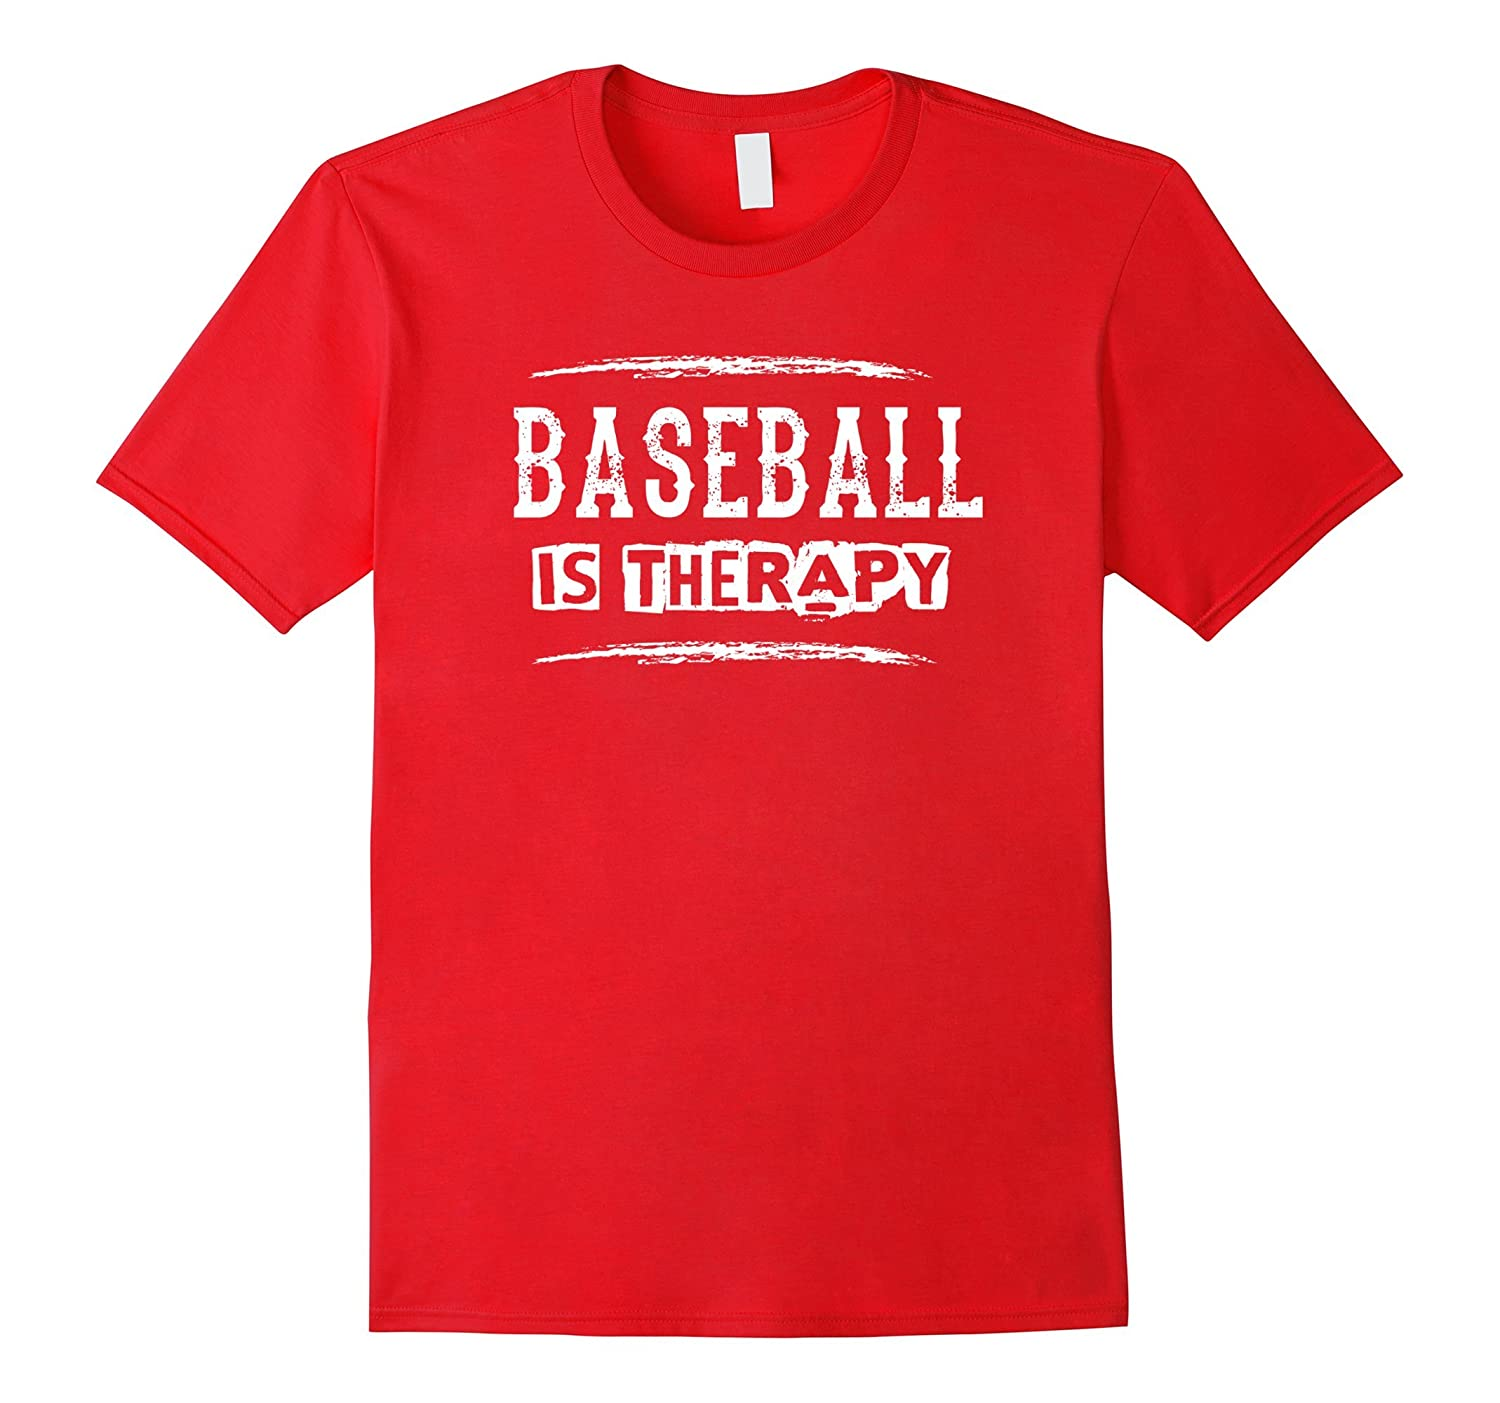 Baseball Is Therapy - Funny Sports Athlete Saying T Shirt-TH